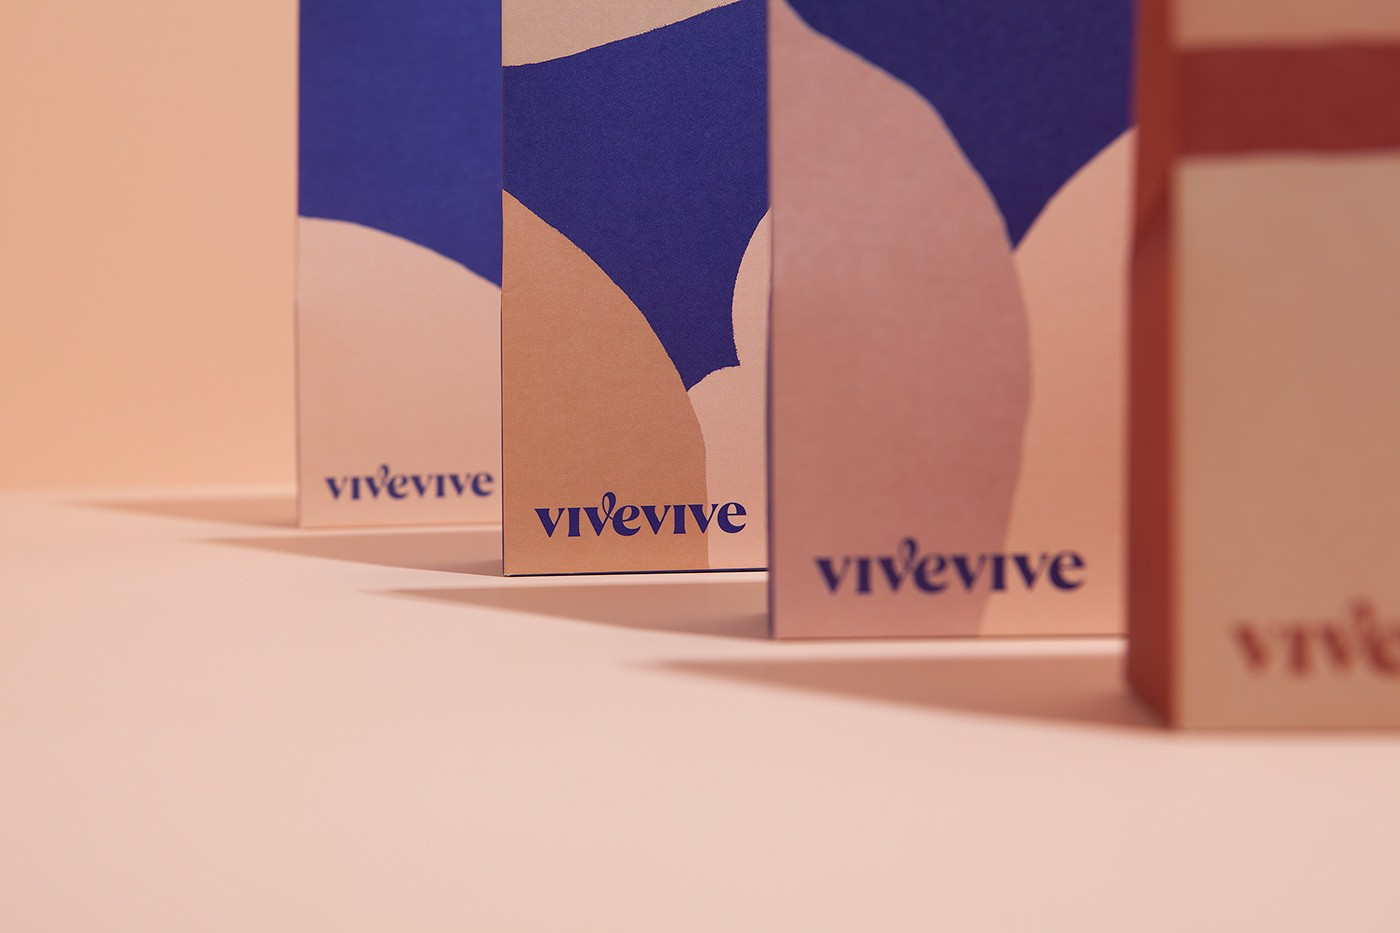 Visual Identity and Packaging Design for Women's Period-Proof Underwear Brand Vivevive